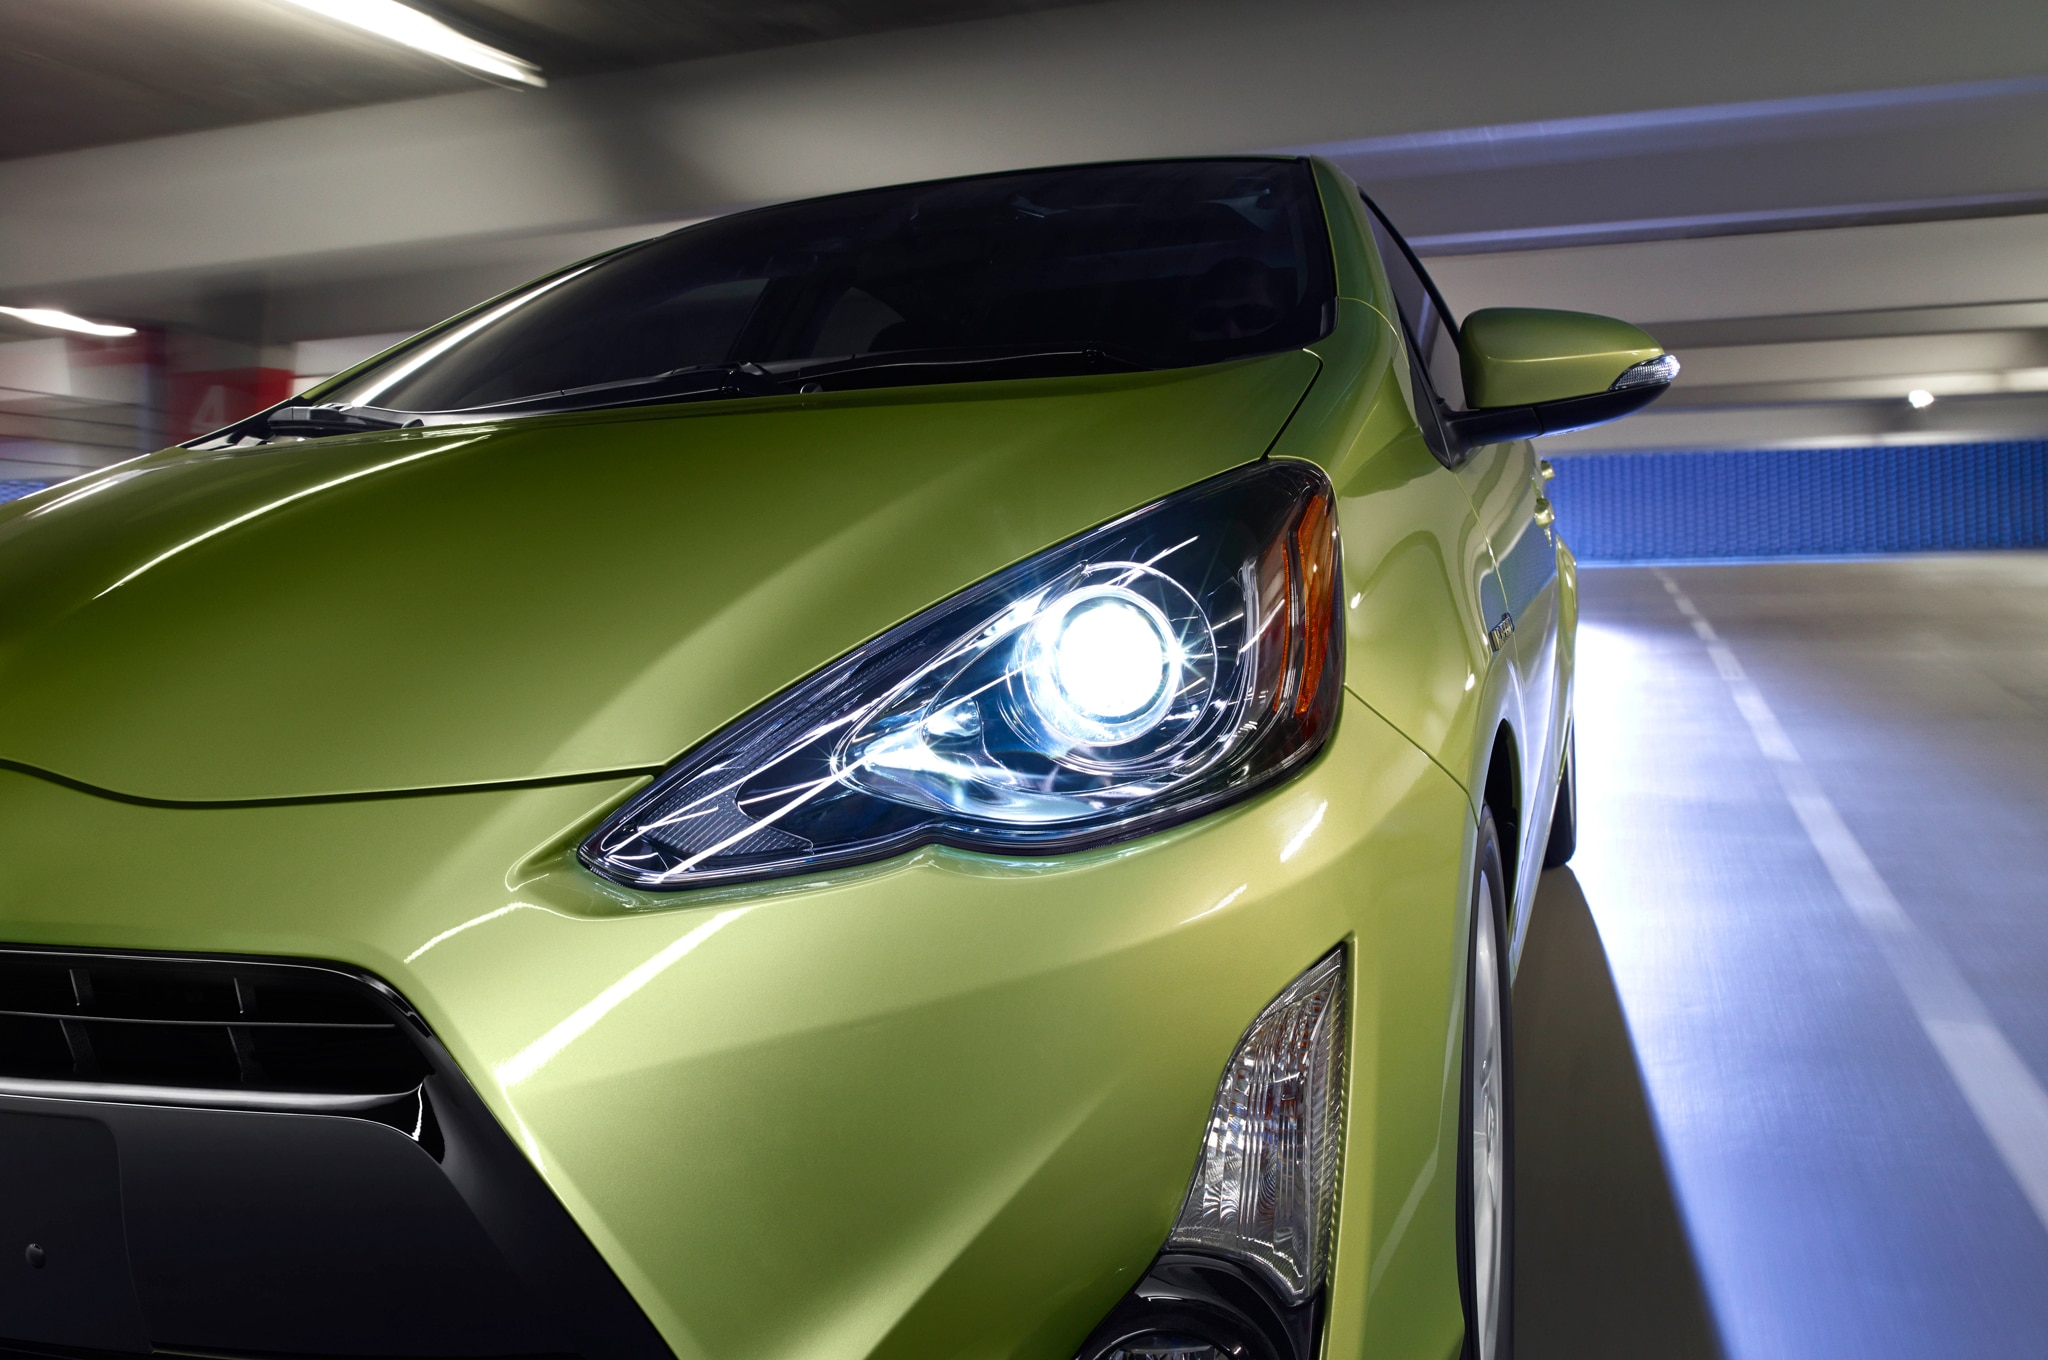 reviews prius c rating and toyota trend cars motor steering